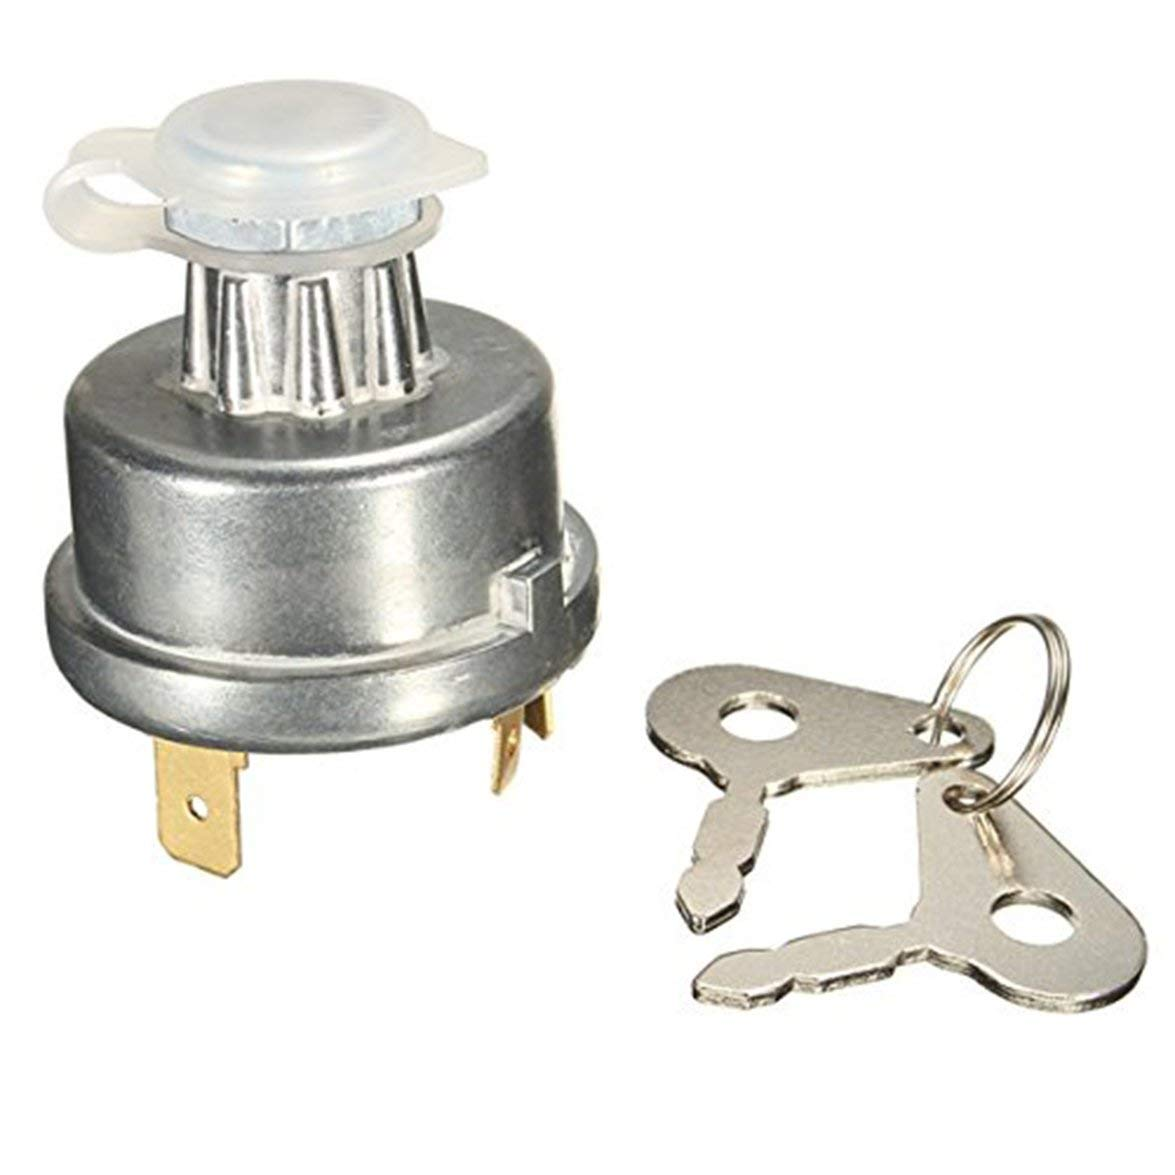 Kongqiabona Tractor Ignition Switch Ignition Lock Starter 12239 for Massey Ferguson for David Brown for Case for John Deere